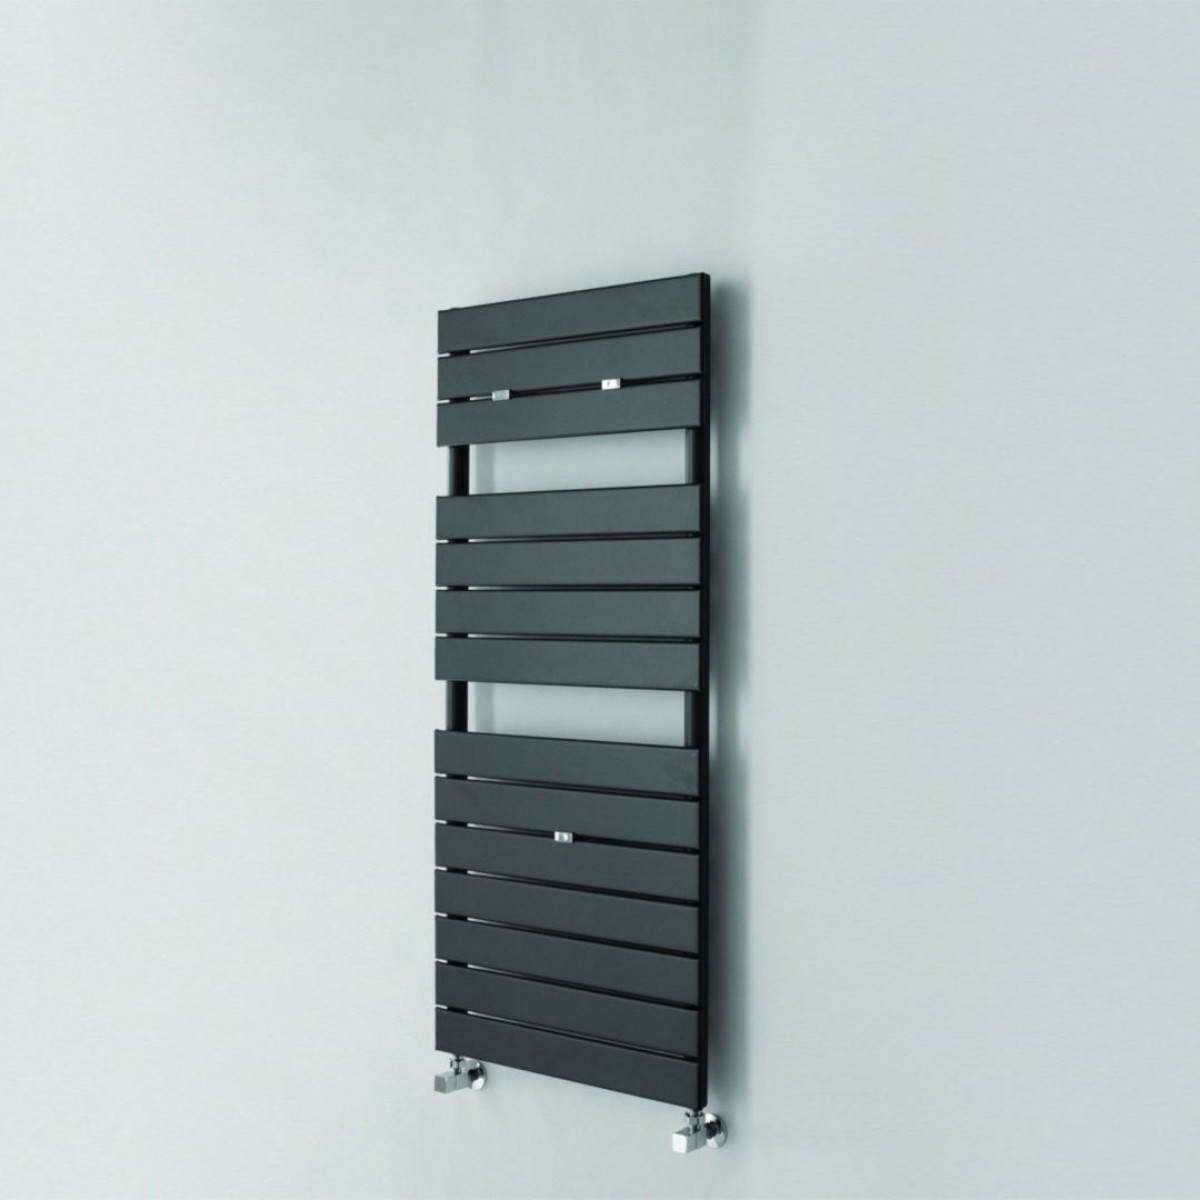 Ideal Essential, Libra Towel Warmers, Anthracite Finish - Showers ...